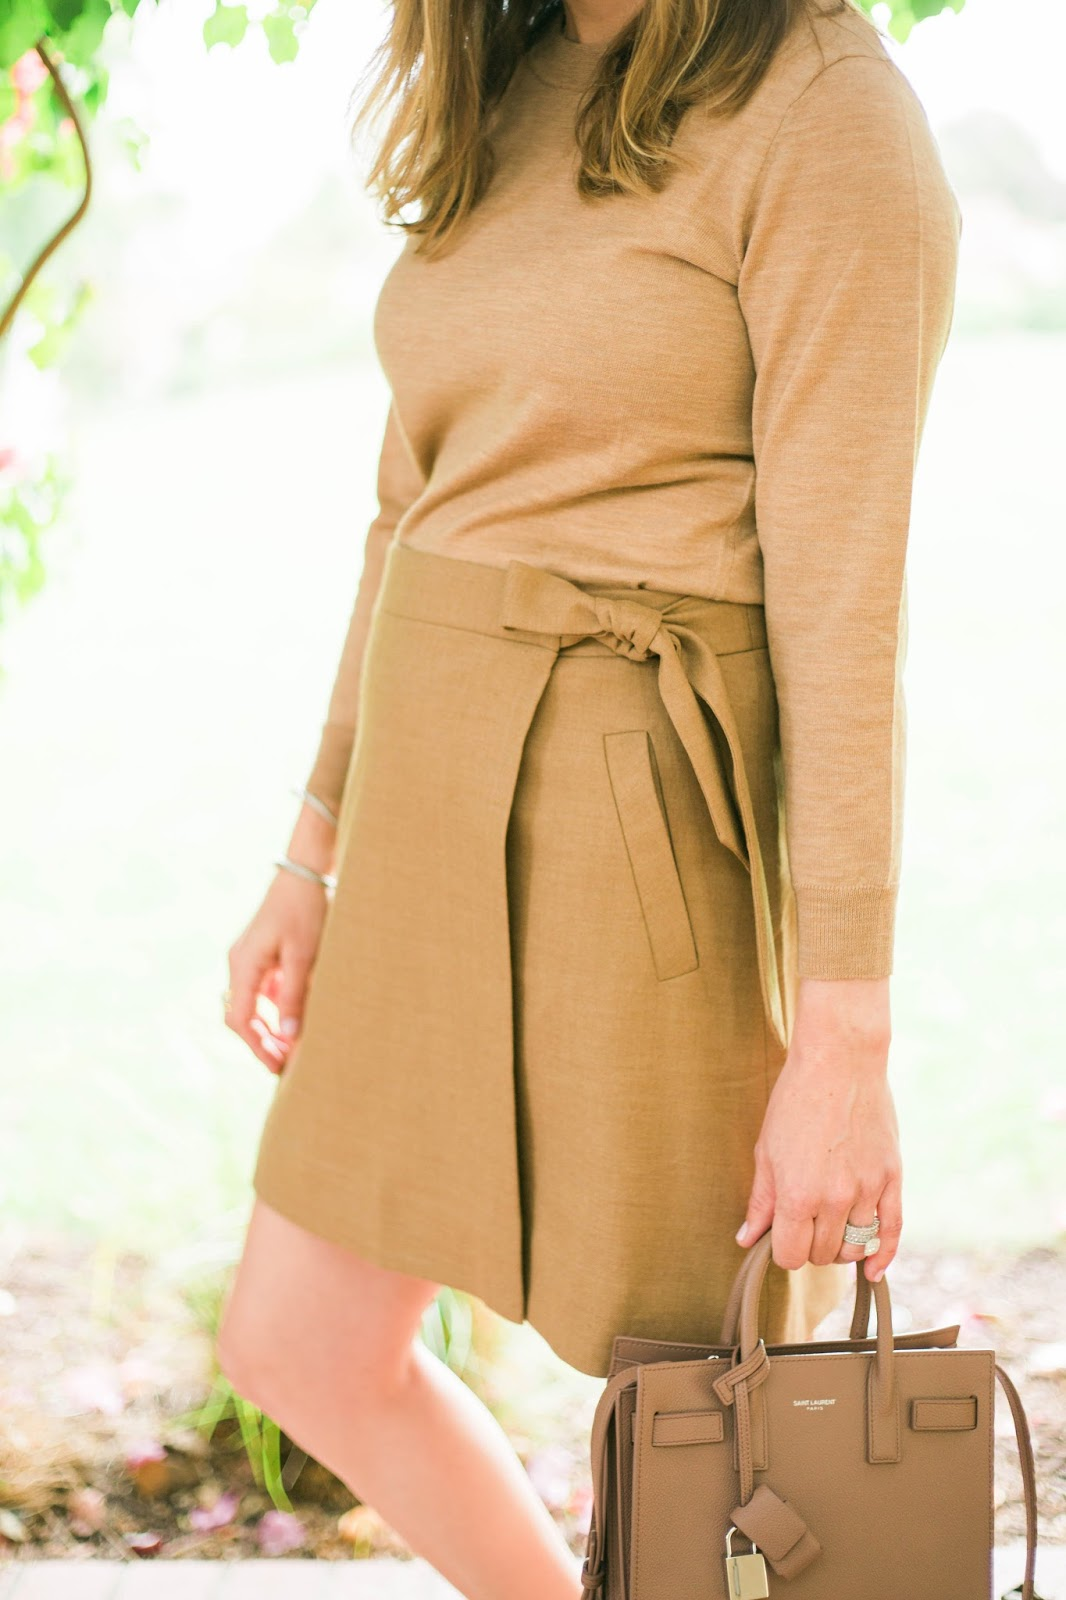 beige monochromatic outfit